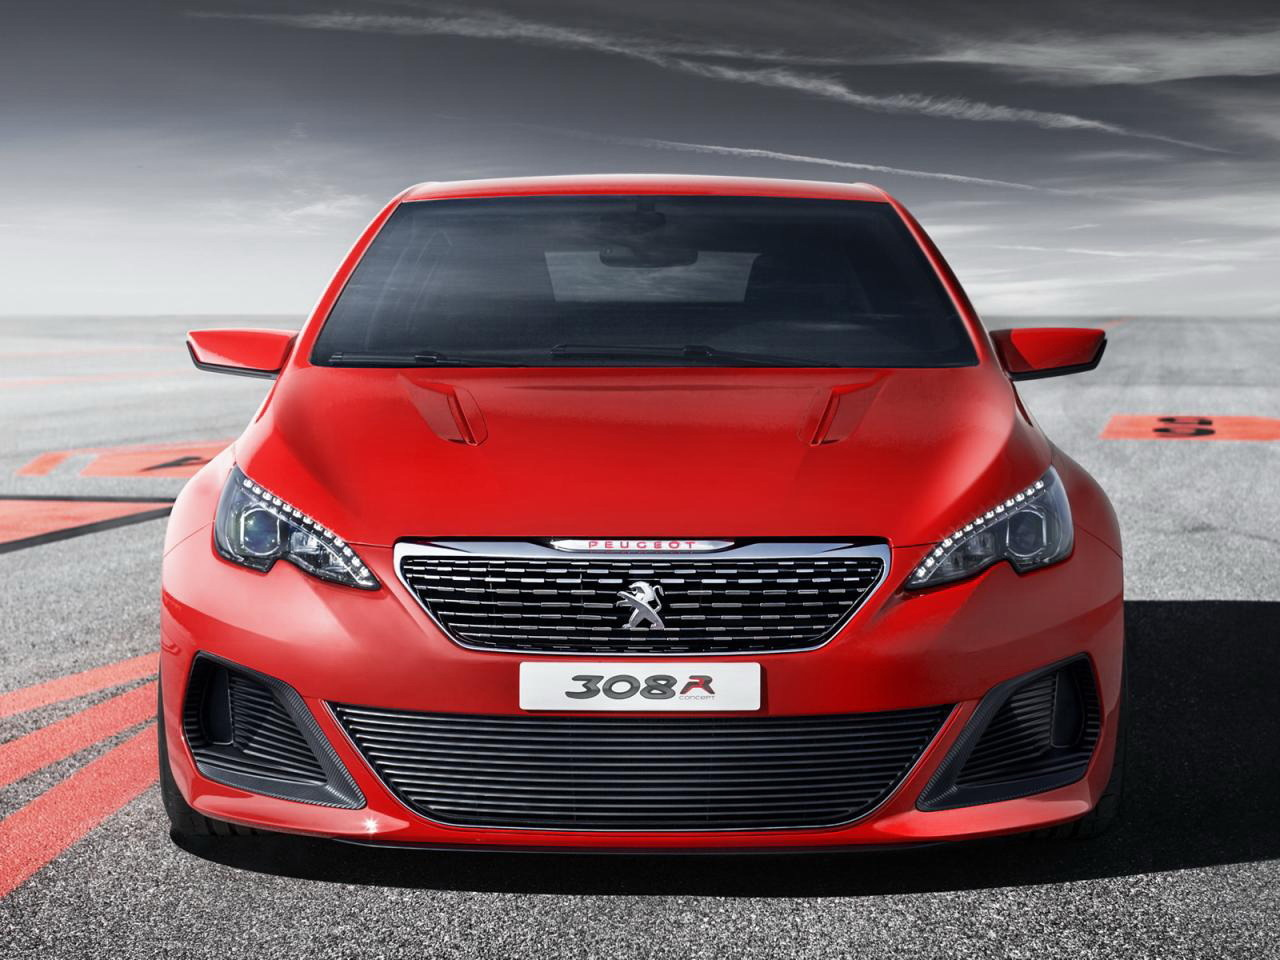 peugeot 308 r hybrid quel moteur pour quelle puissance. Black Bedroom Furniture Sets. Home Design Ideas